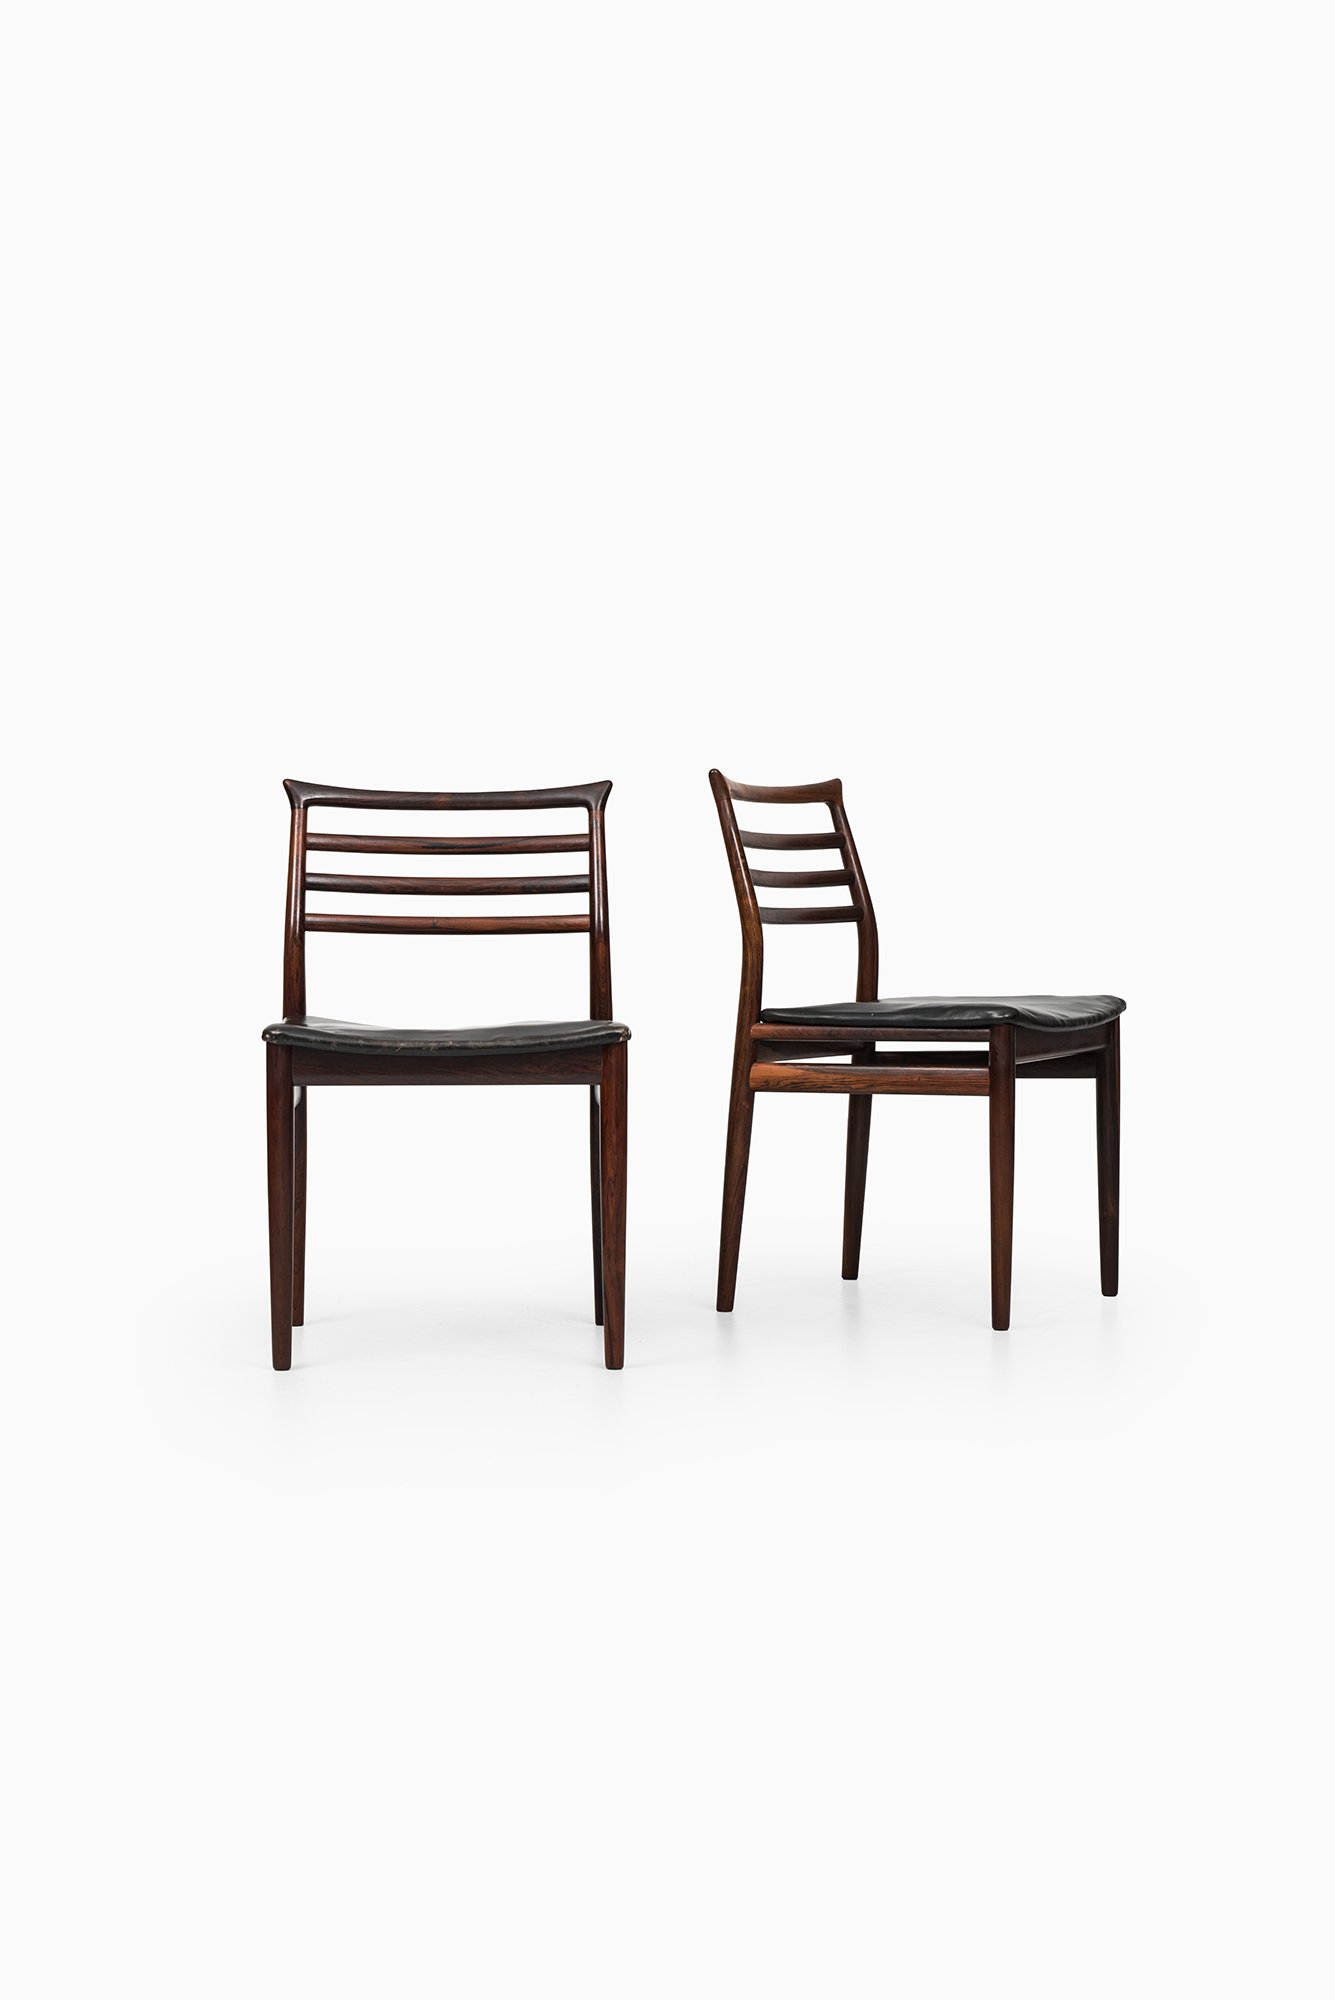 Erling Torvits Dining Chairs At Studio Schalling